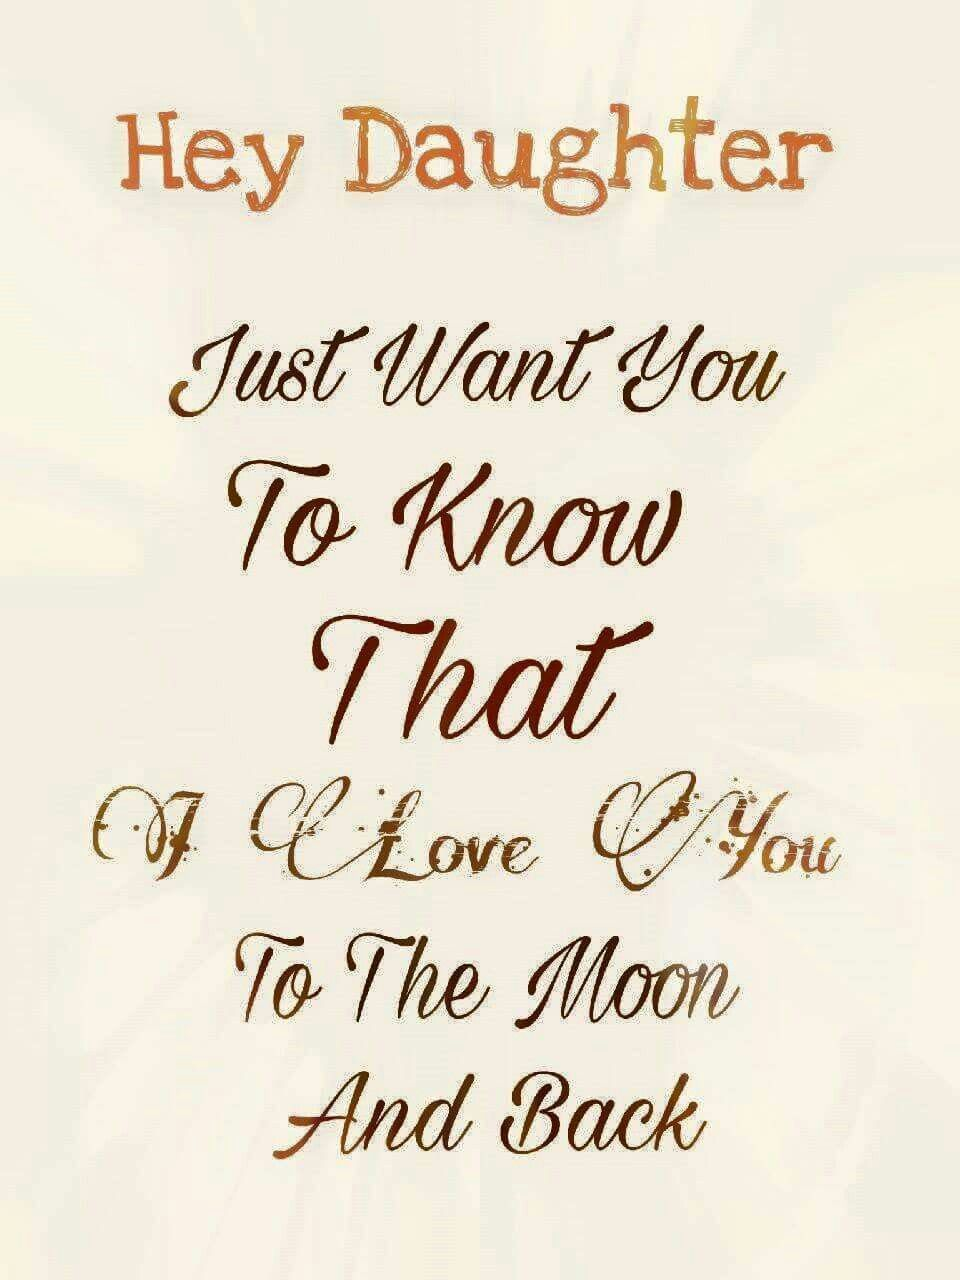 Love You Sister Quotes Pindawn Schlund On For Our Baby Daughter  Pinterest  Daughters